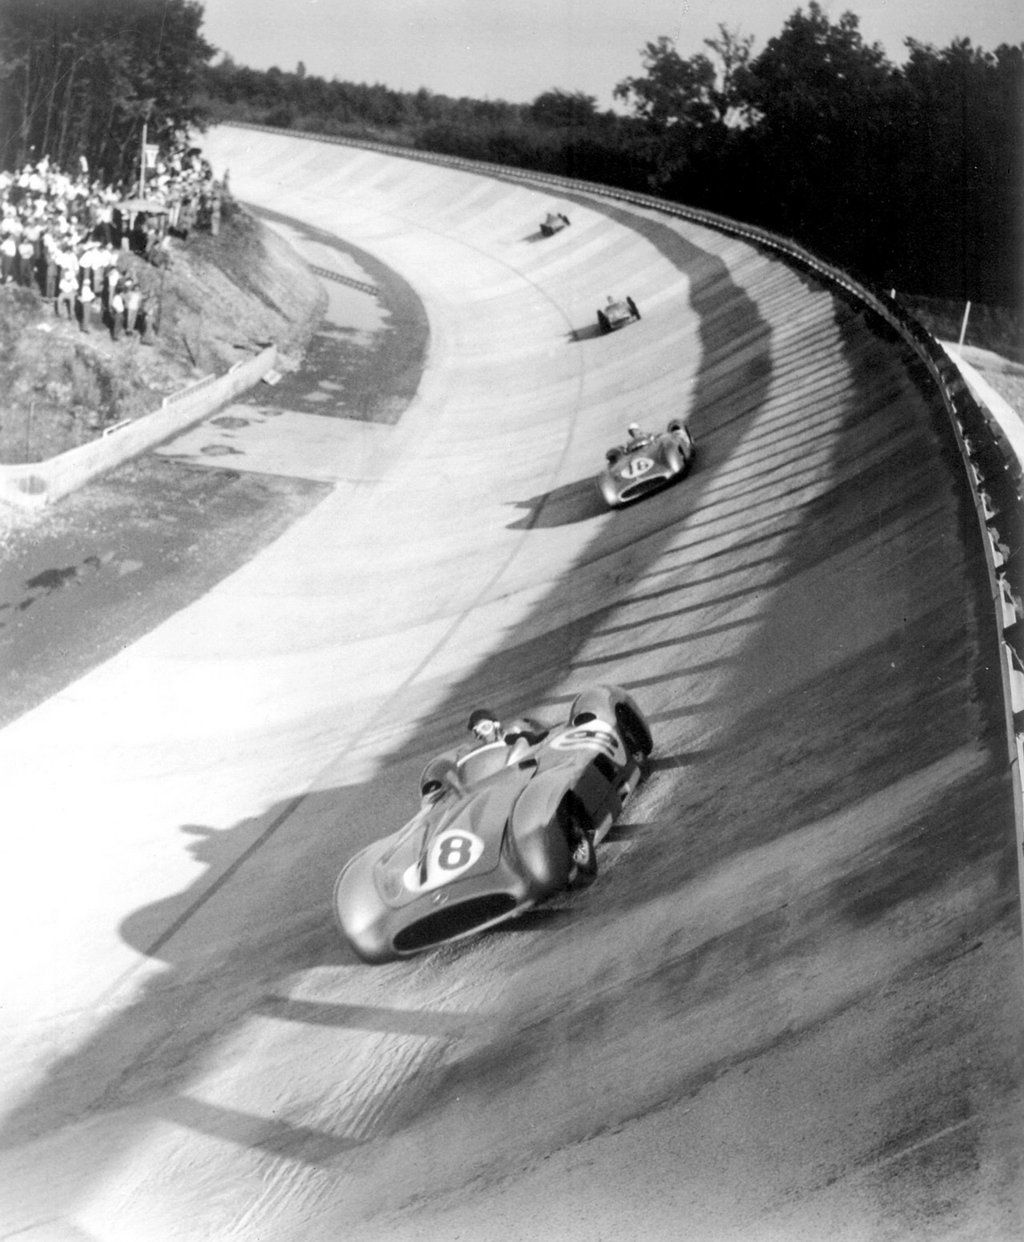 Juan Manuel Fangio (ARG) (Daimler Benz AG), Mercedes-Benz W196 - Mercedes-Benz 2.5 L8 (finished 1st*) Stirling Craufurd Moss (GBR) (Daimler Benz AG), Mercedes-Benz W196 - Mercedes-Benz 2.5 L8 (RET*)  Piero Taruffi (ITA) (Daimler Benz AG), Mercedes-Benz W196 - Mercedes-Benz 2.5 L8 (finished 2nd) Karl Kling (GER) (Daimler Benz AG), Mercedes-Benz W196 - Mercedes-Benz 2.5 L8 (RET) 1955 Italian Grand Prix, Autodromo Nazionale Monza